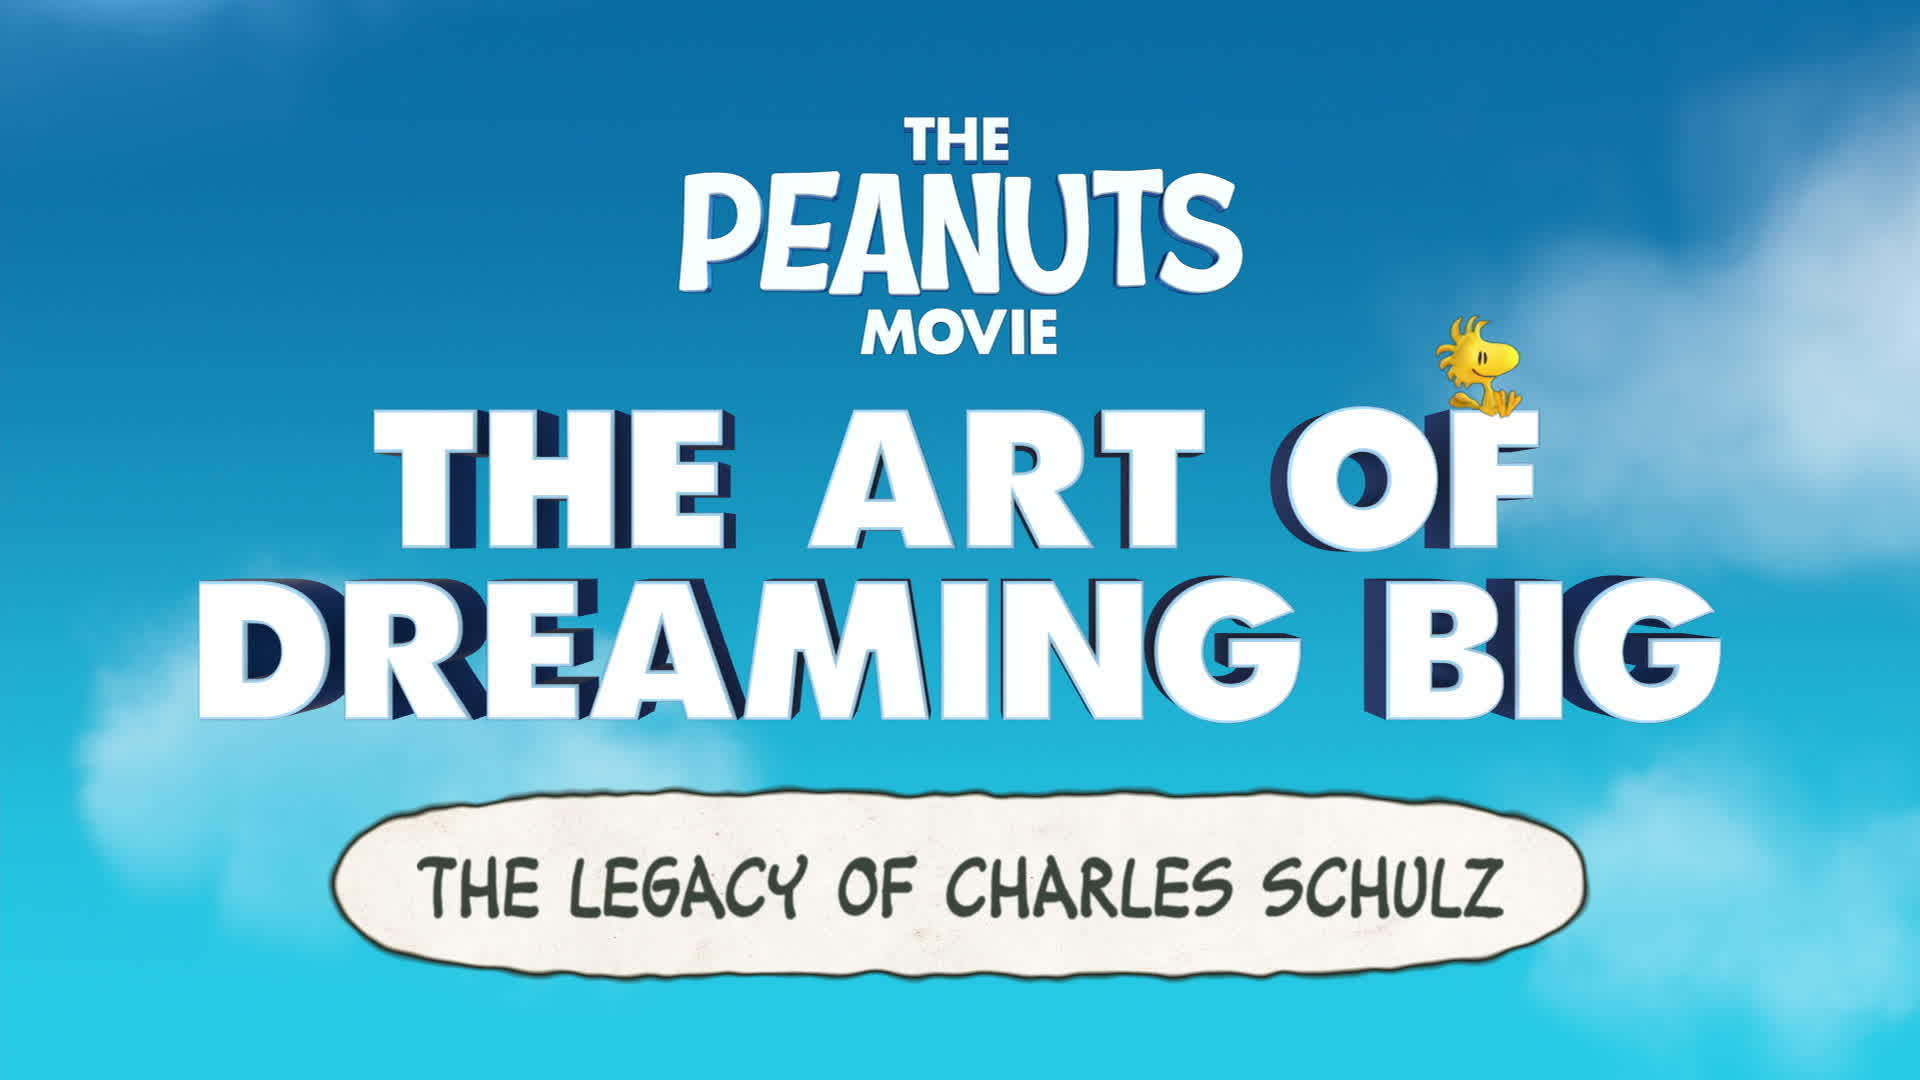 The Legacy of Charles Schulz